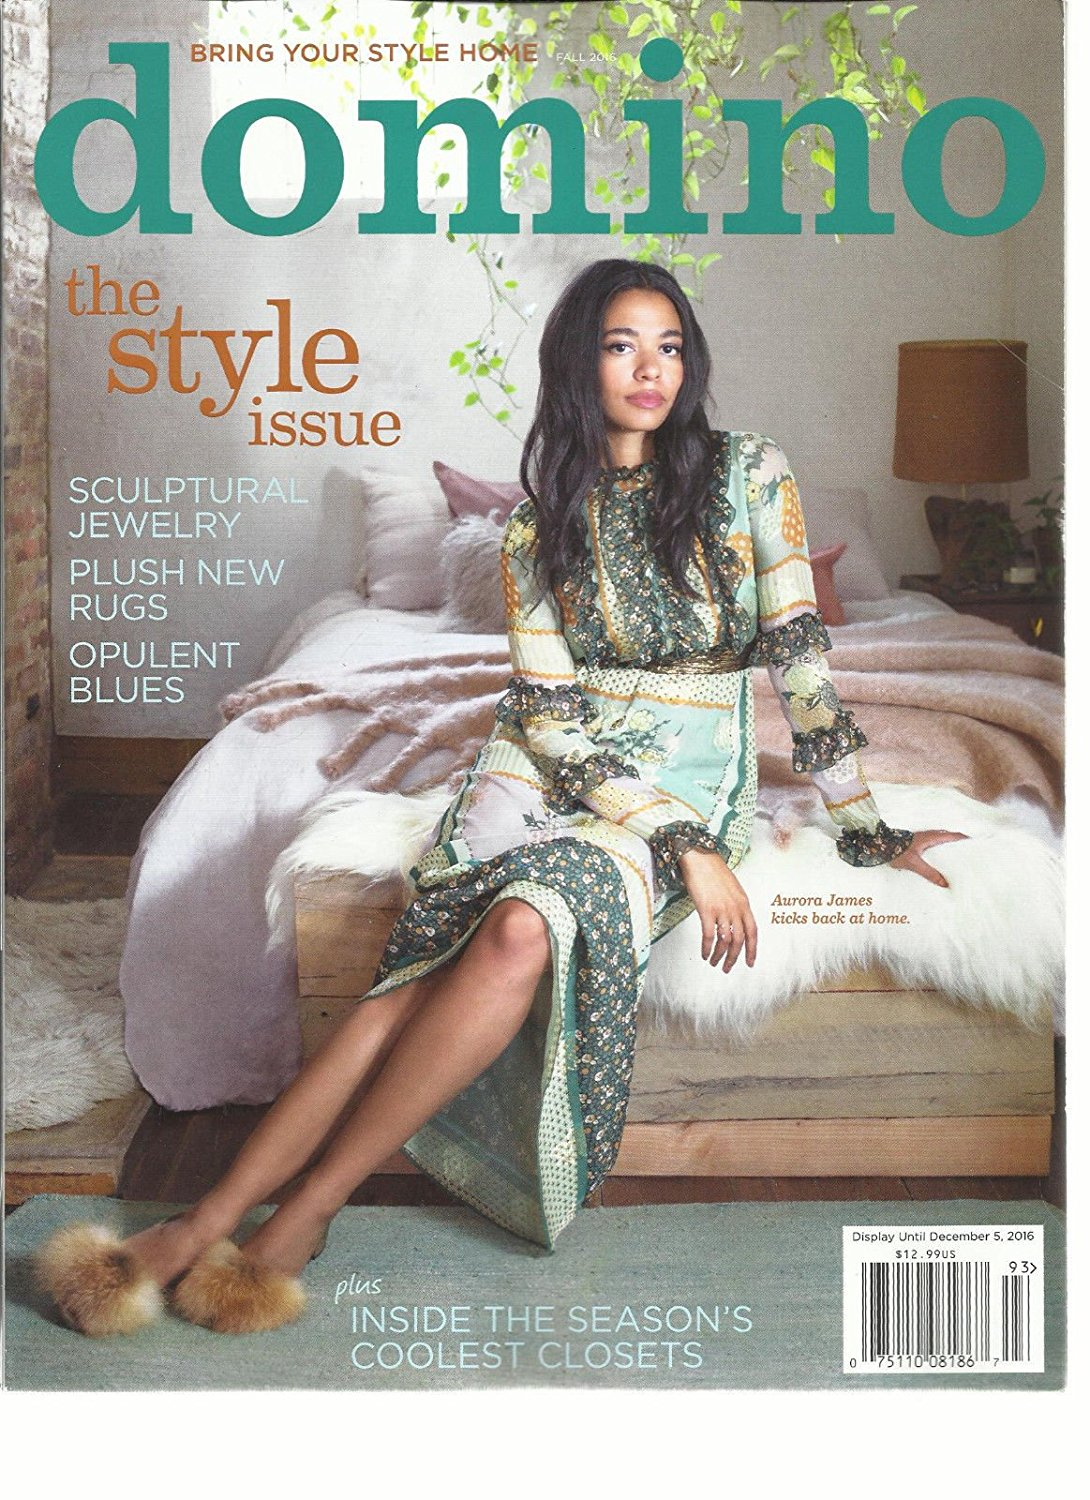 DOMINO MAGAZINE BRING YOUR STYLE HOME, THE STYLE ISSUE FALL, 2016